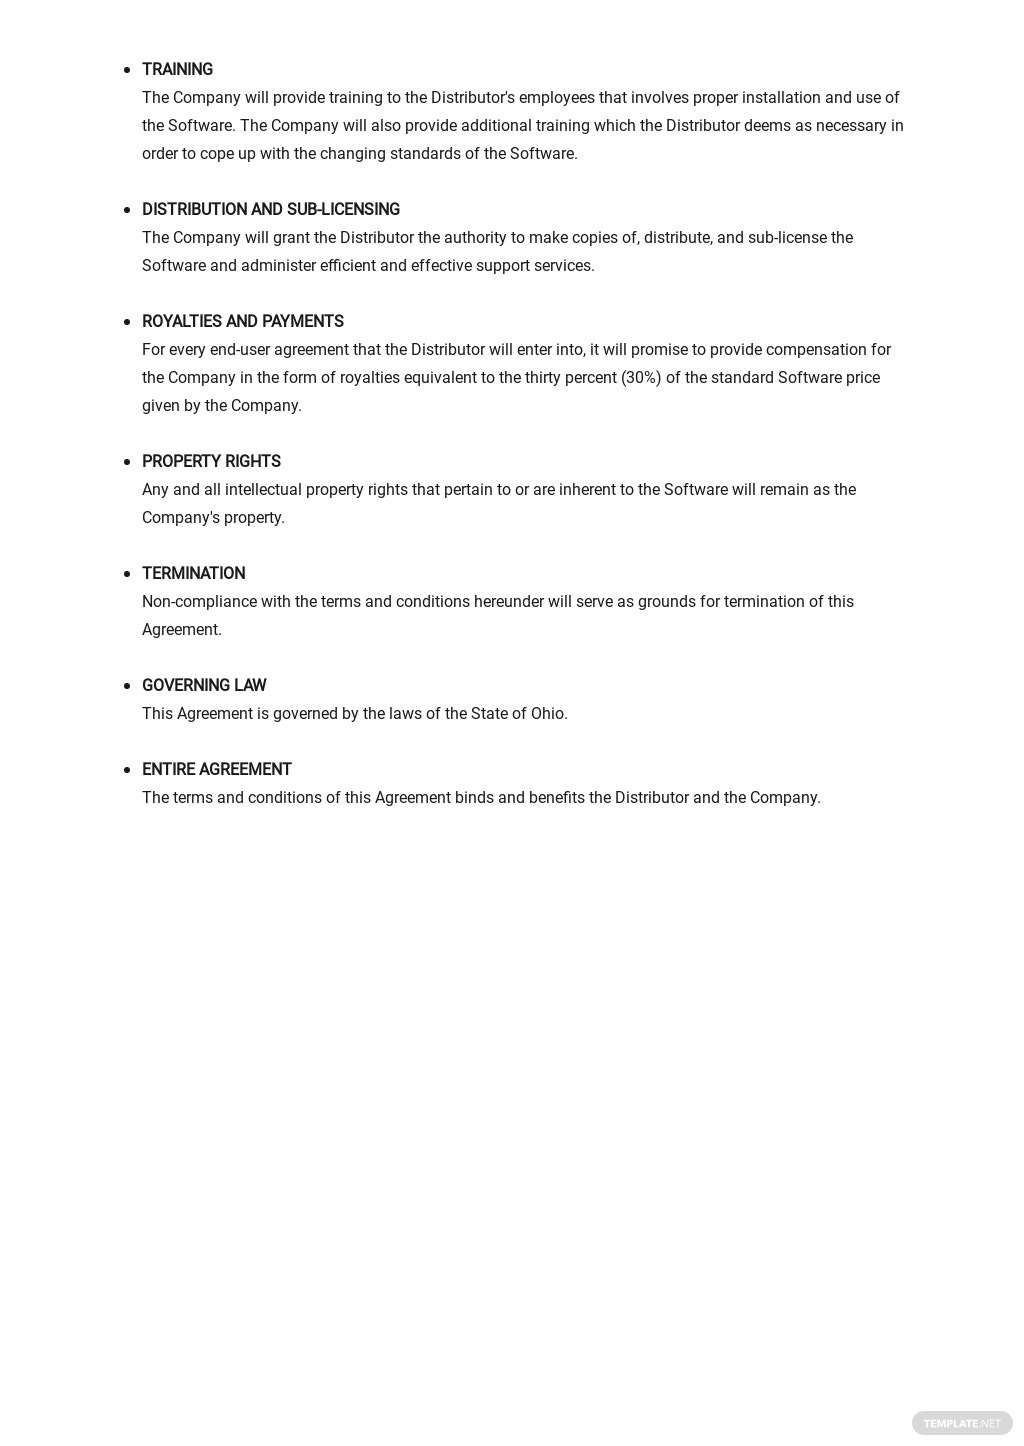 Software Distribution Agreement Long Form Template  2.jpe